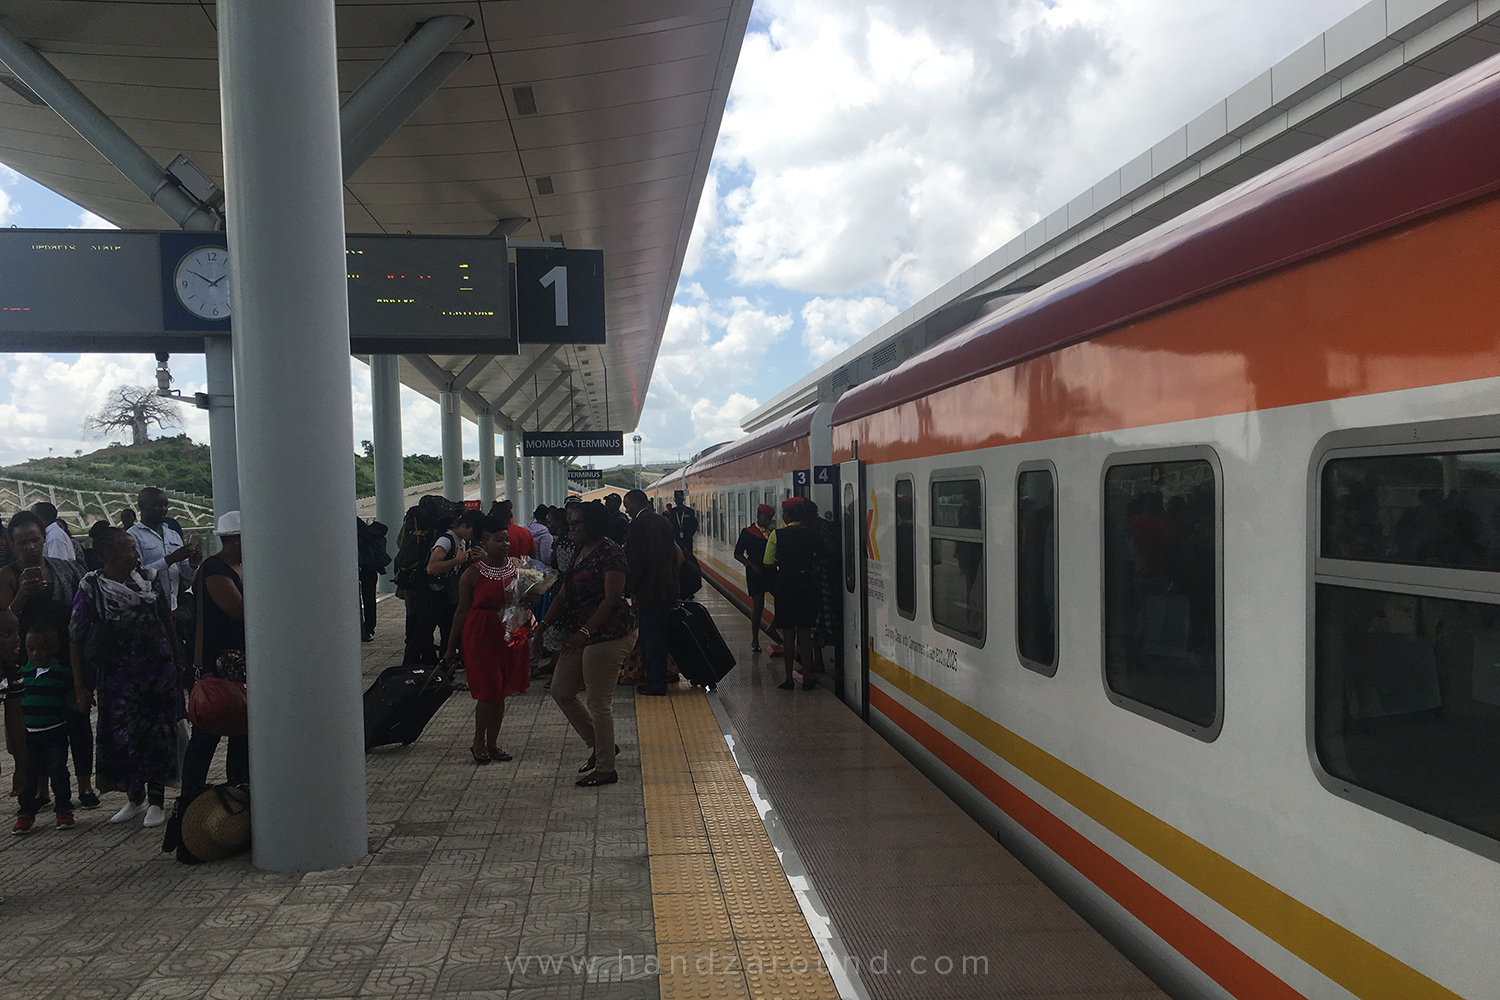 The SGR train from the outside